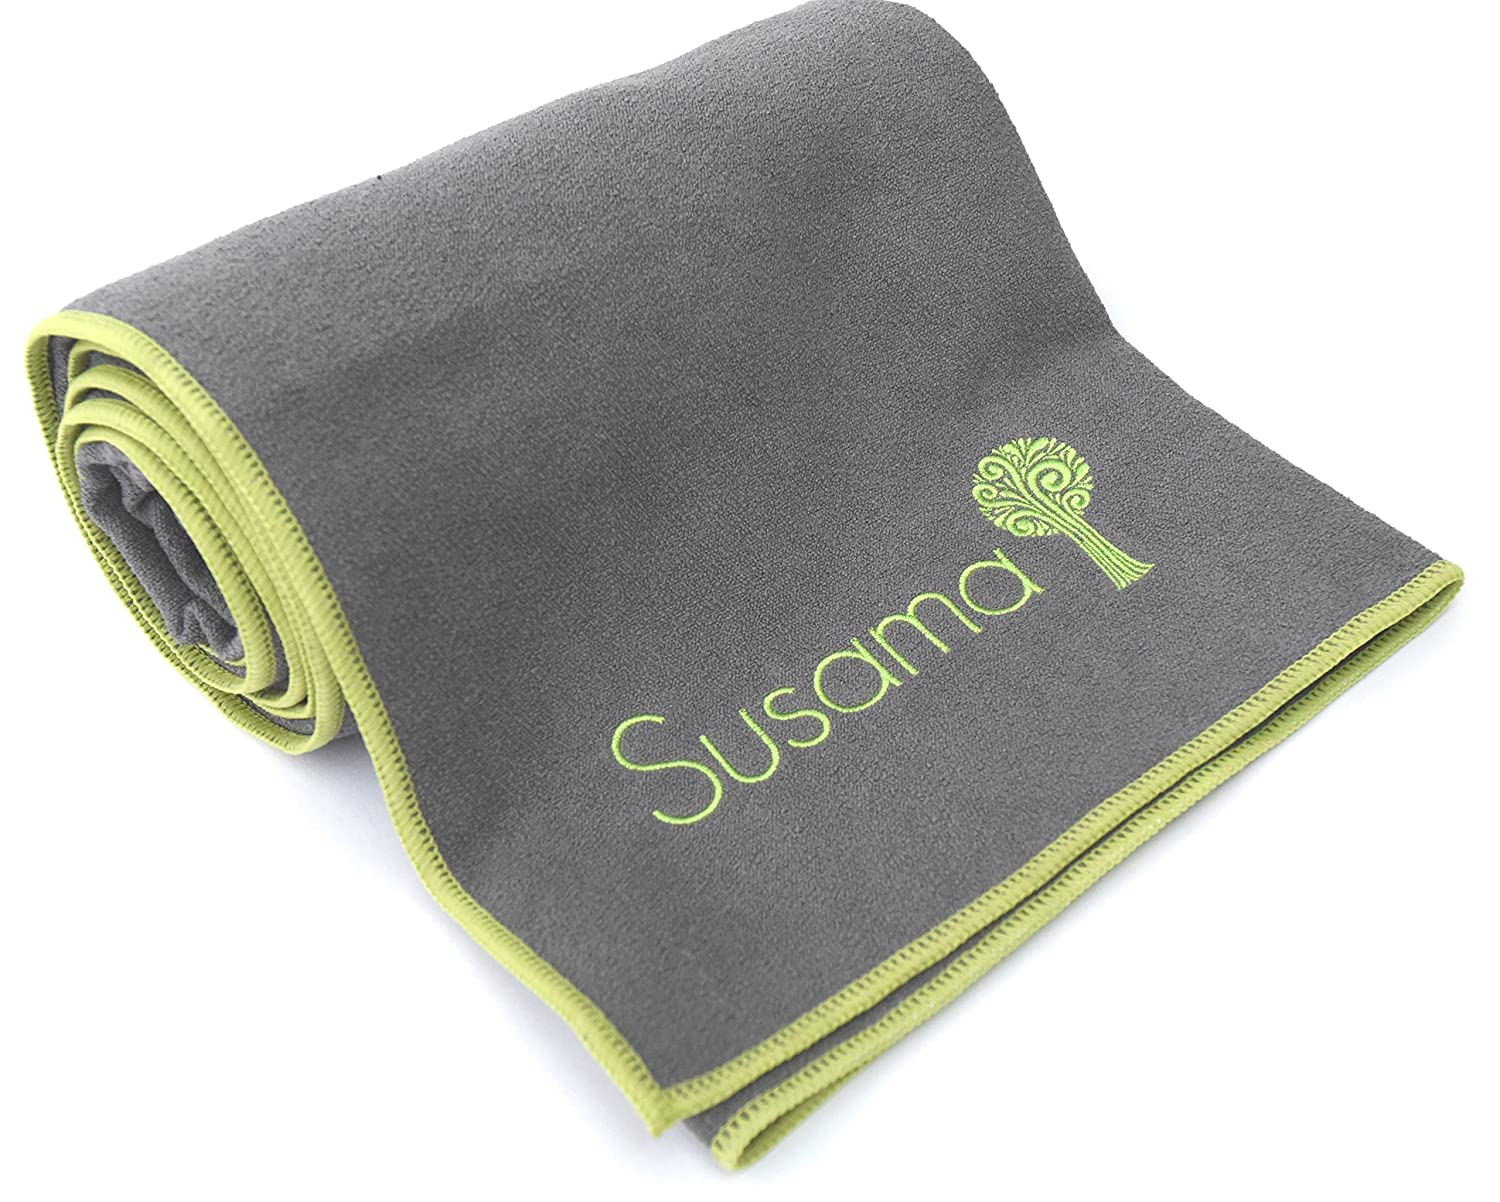 All-in-1 Sports & Hot Yoga Towel